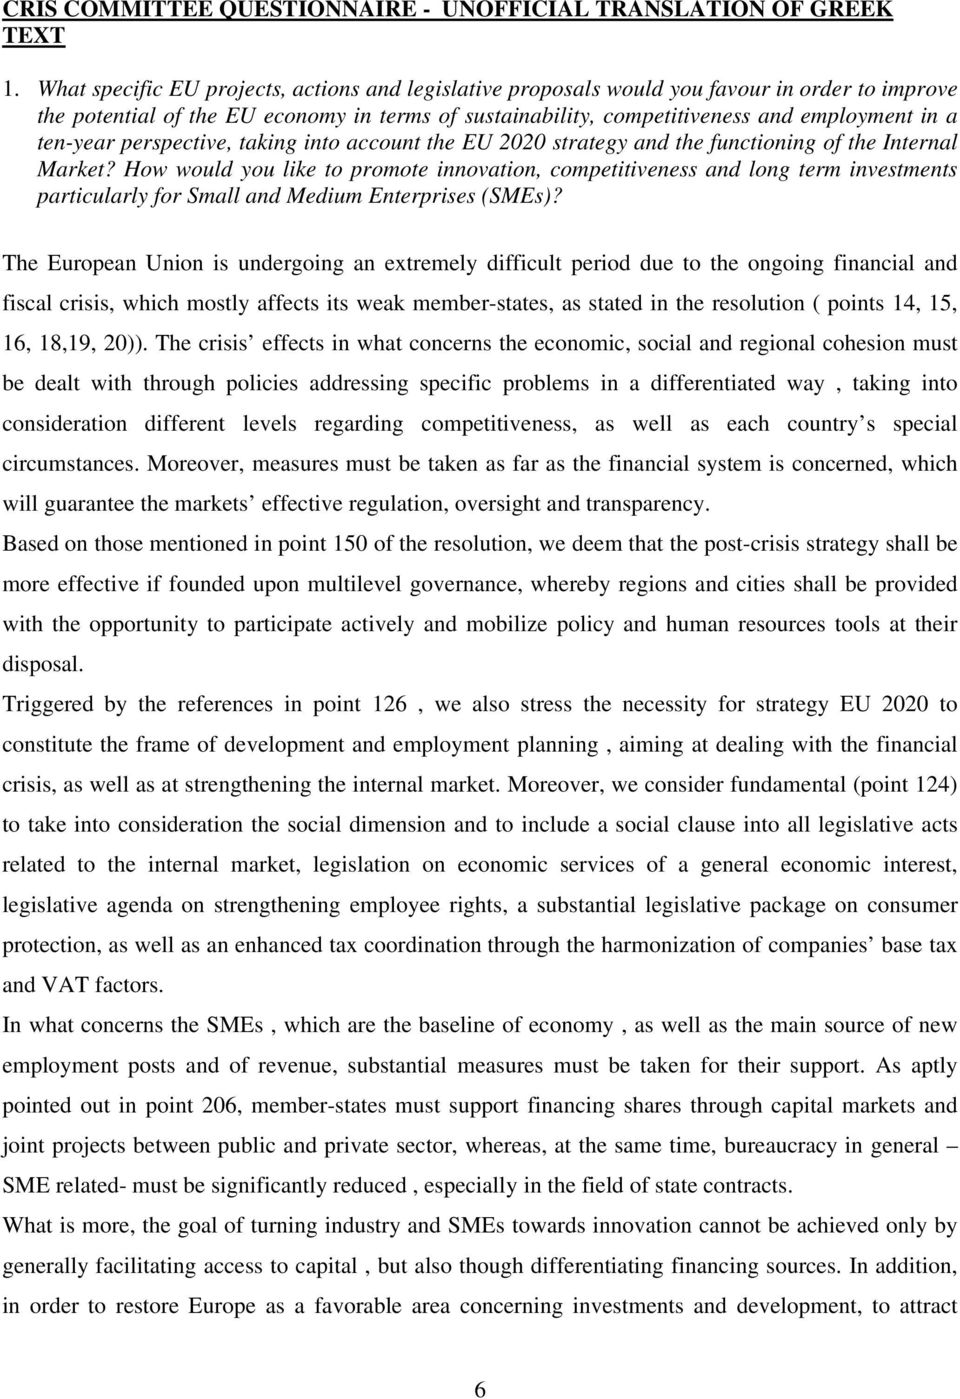 ten-year perspective, taking into account the EU 2020 strategy and the functioning of the Internal Market?